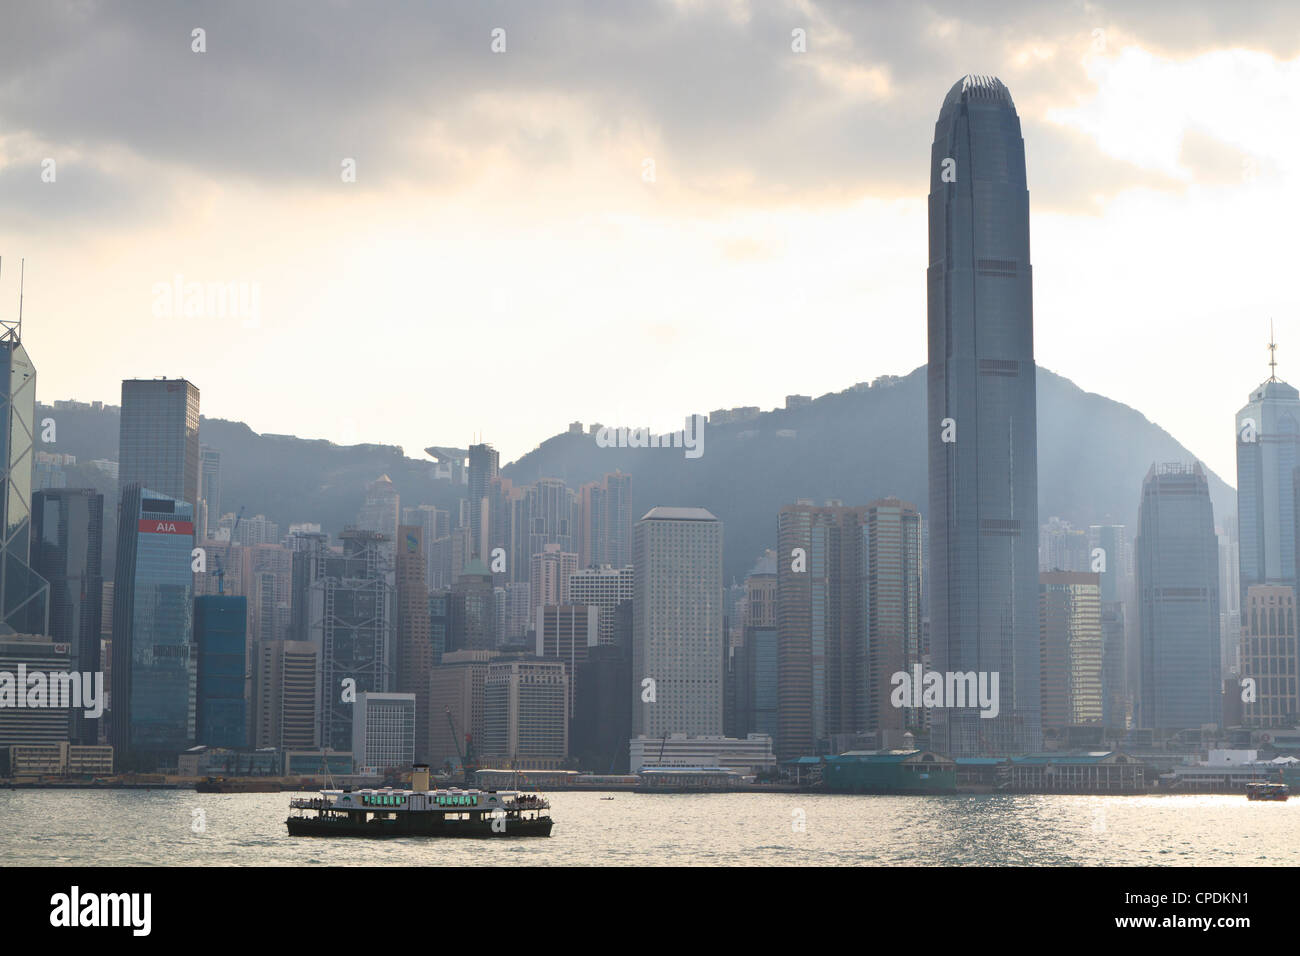 Star ferry on Victoria Harbour with the skyscrapers of Hong Kong Island behind, Hong Kong, China, Asia Stock Photo